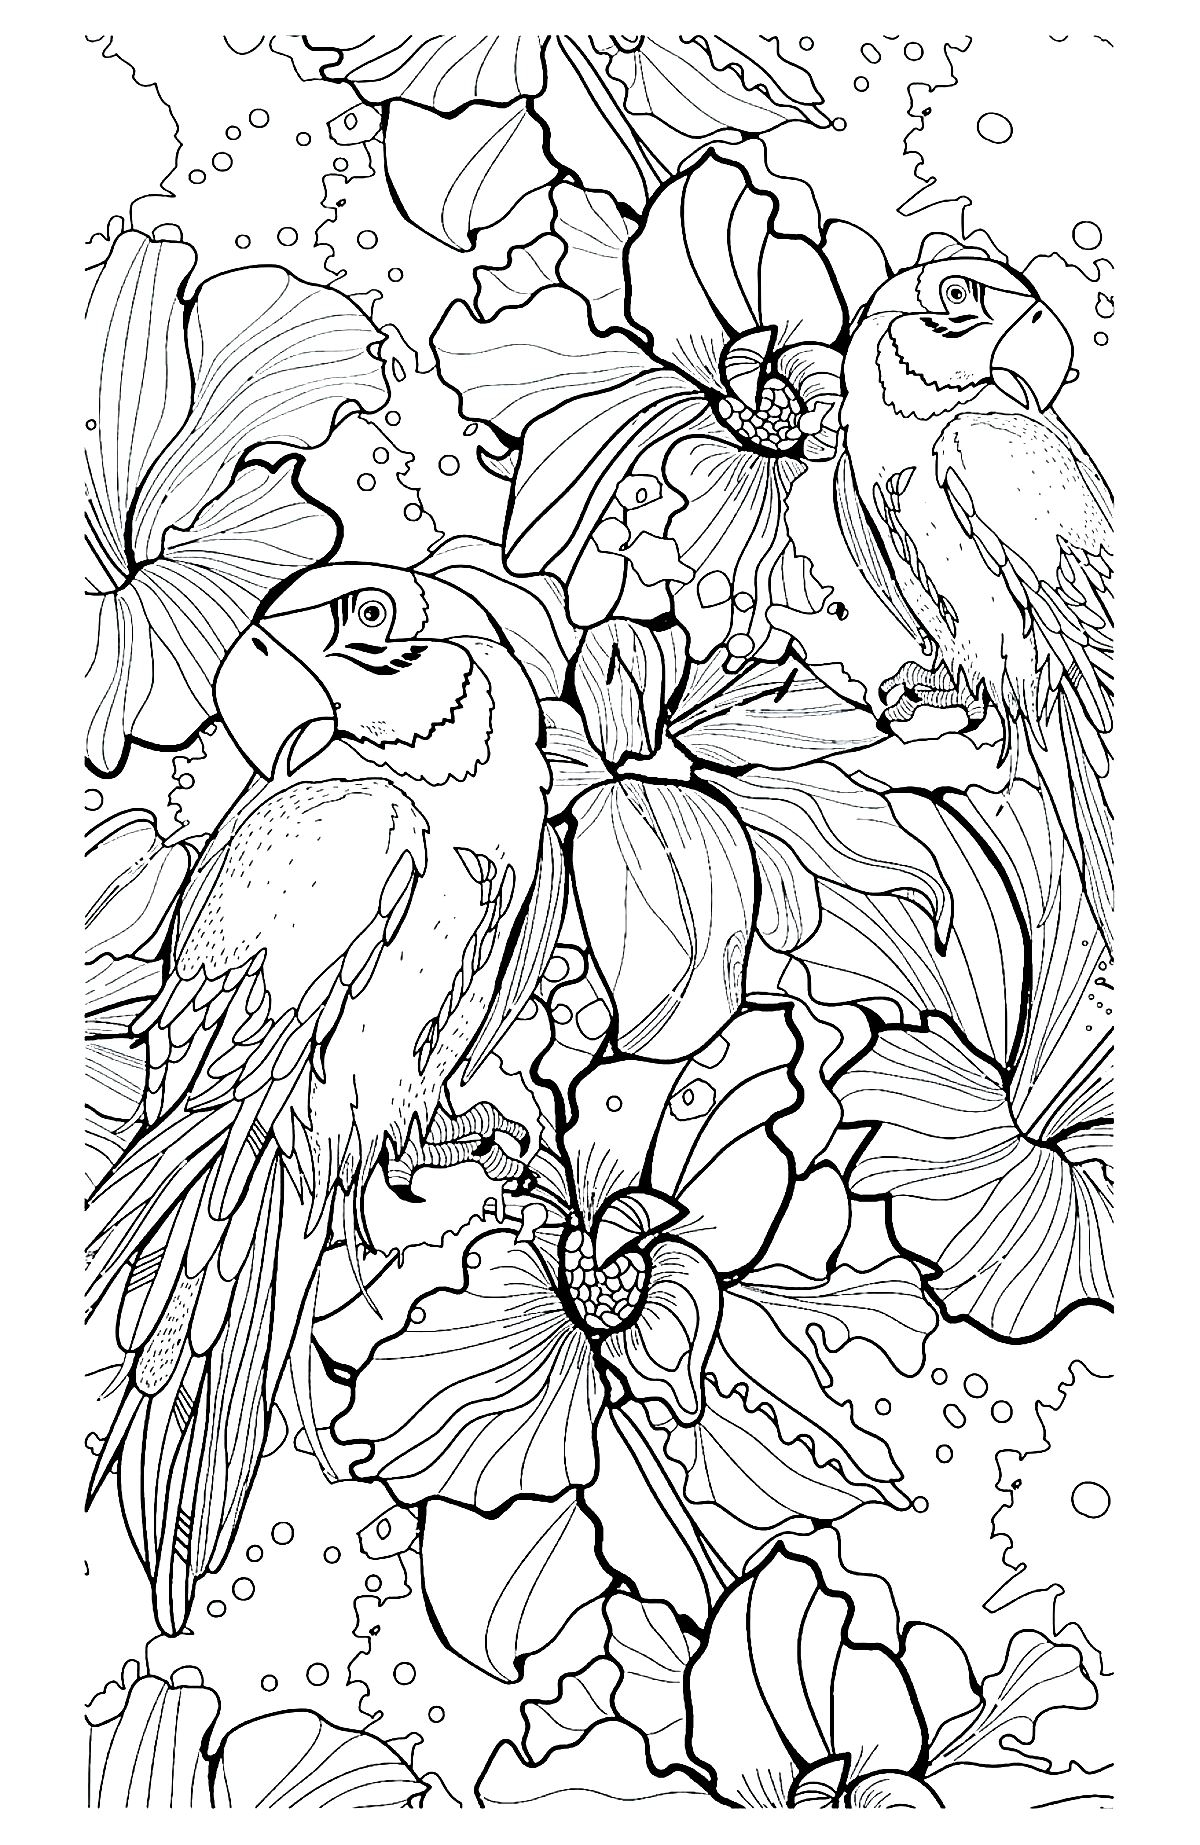 complex coloring pages - plex coloring pages of animals